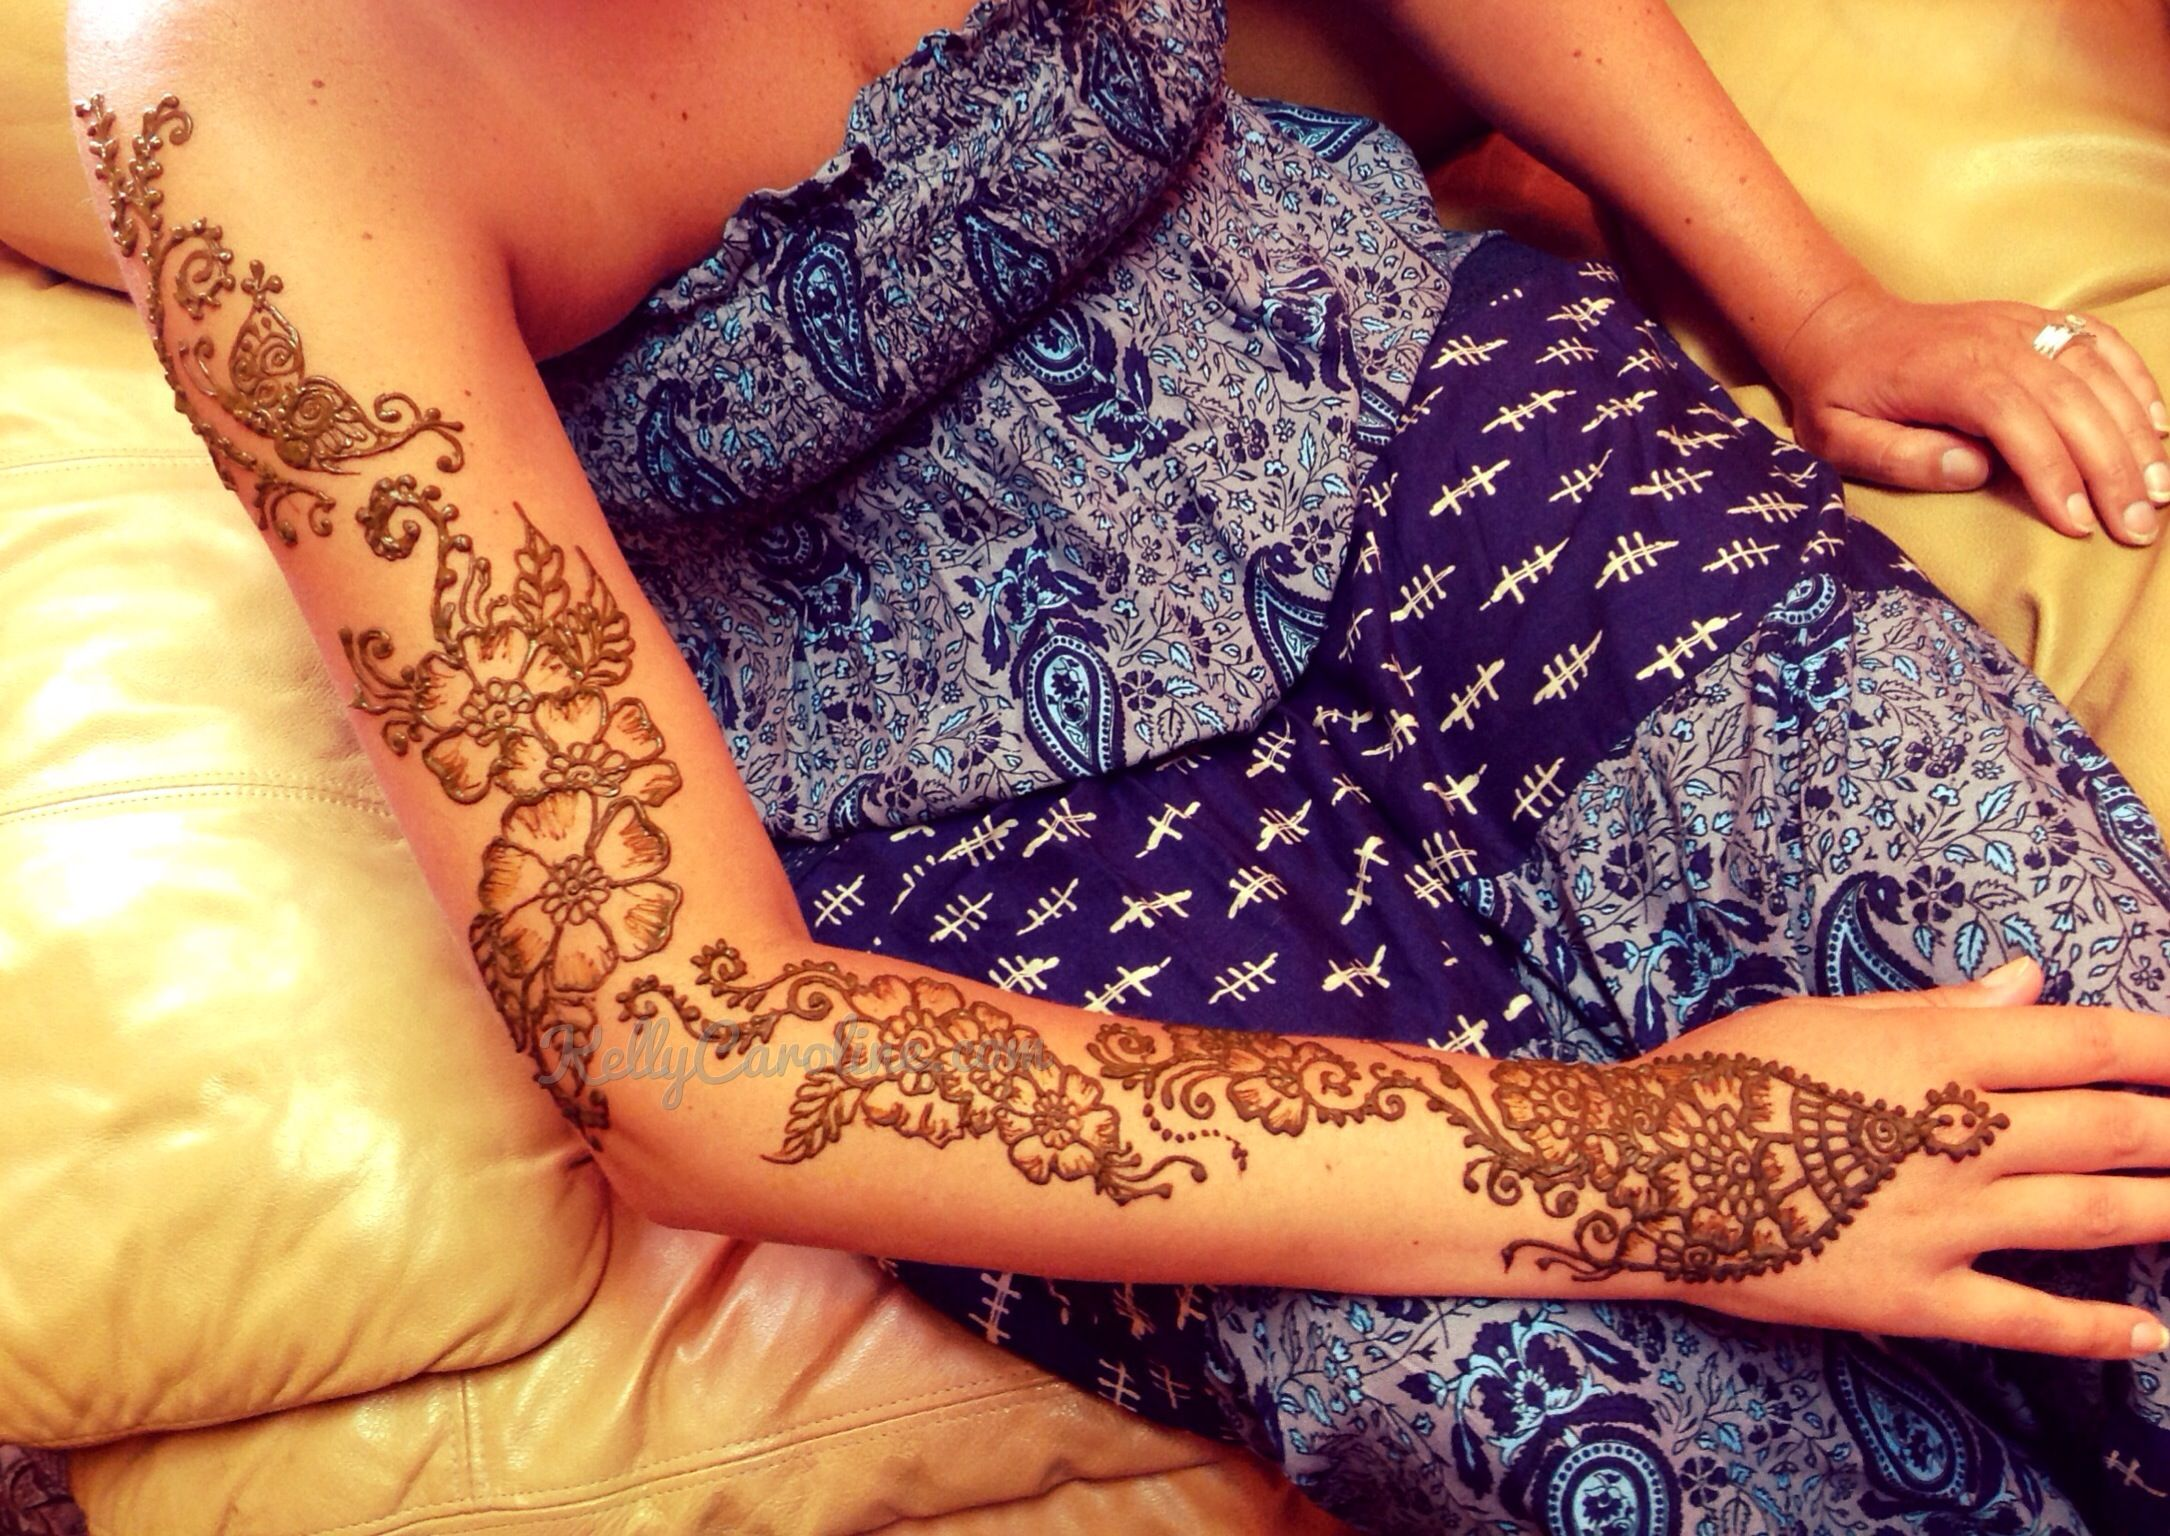 Mehndi Flower Image : Henna tattoo sleeve with flowers michigan mehndi artist